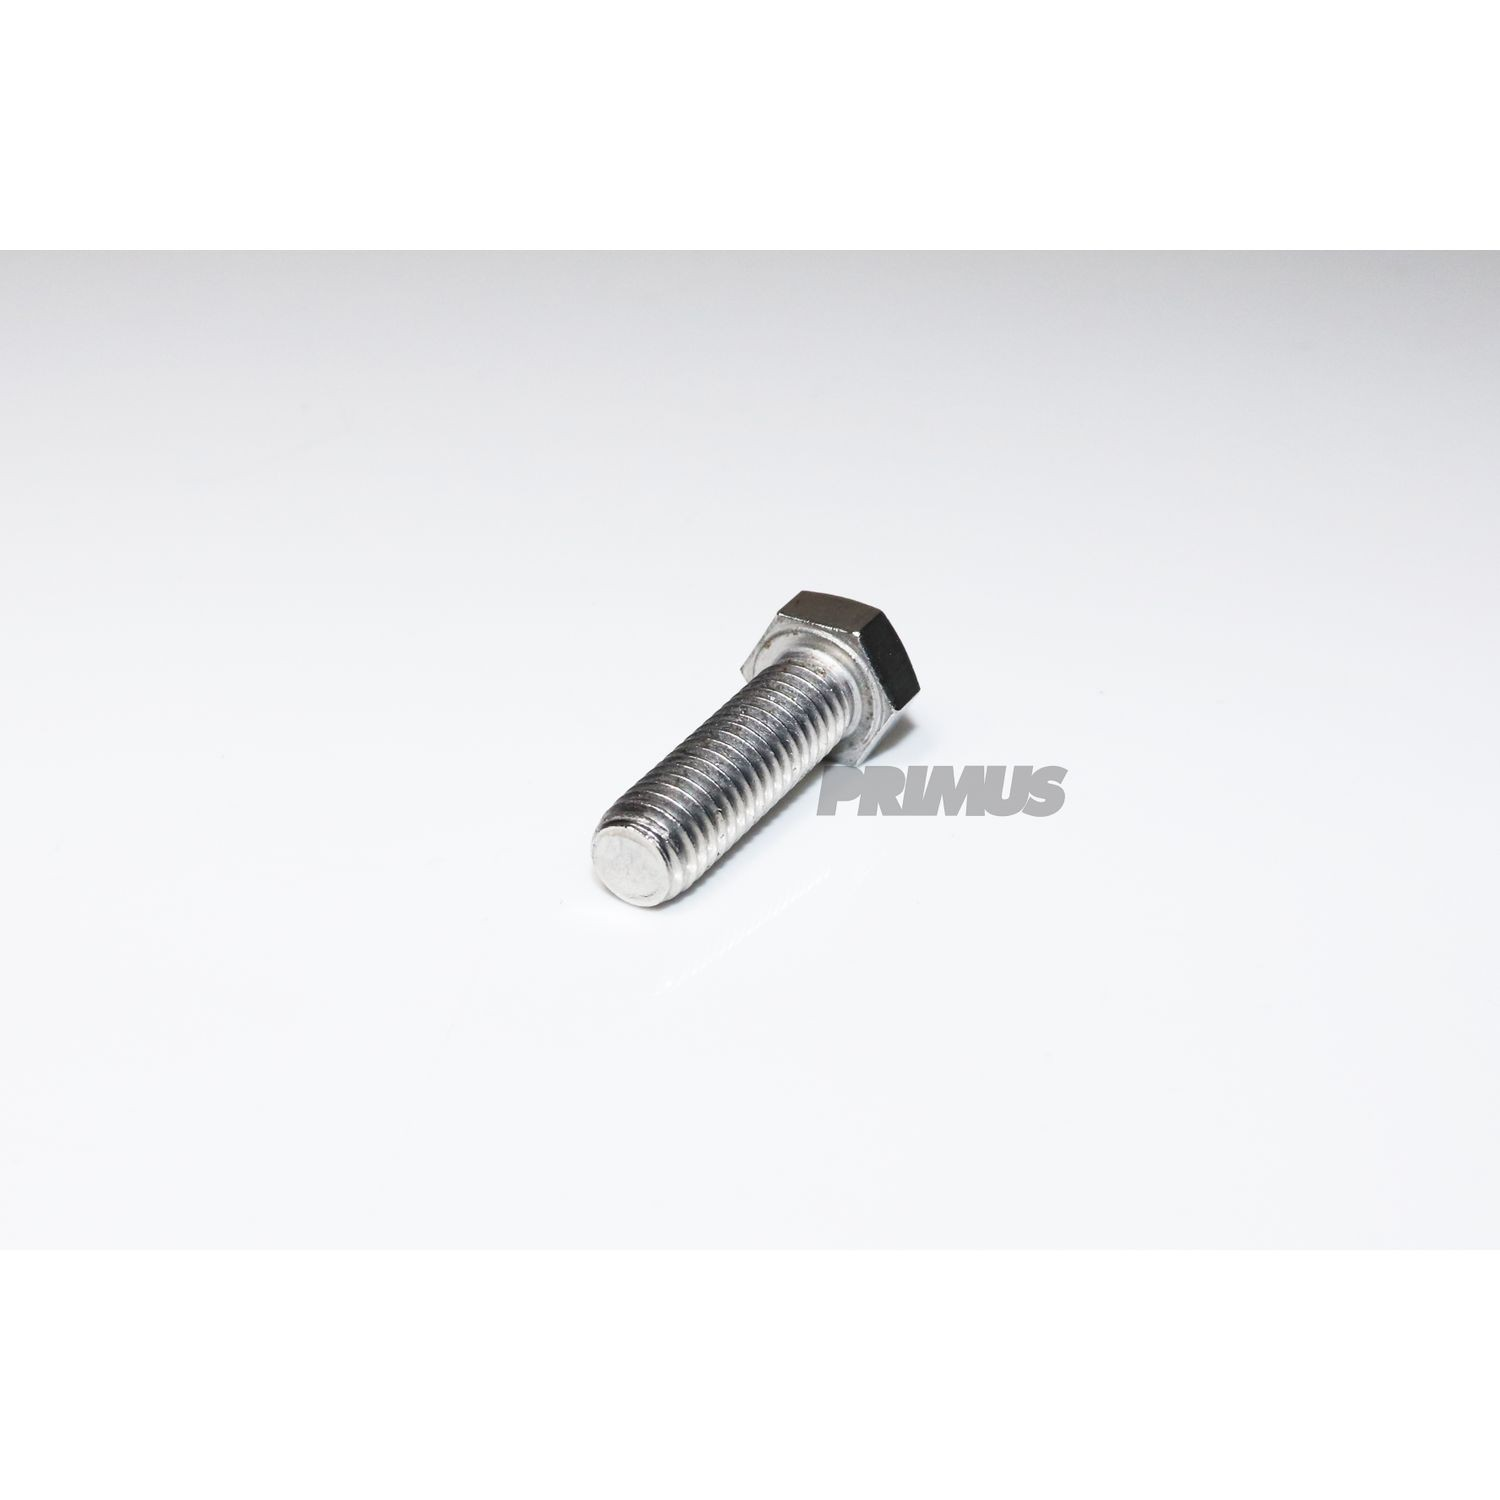 "3/8"" X 1-1/4"" STAINLESS STEEL HEX BOLTS"